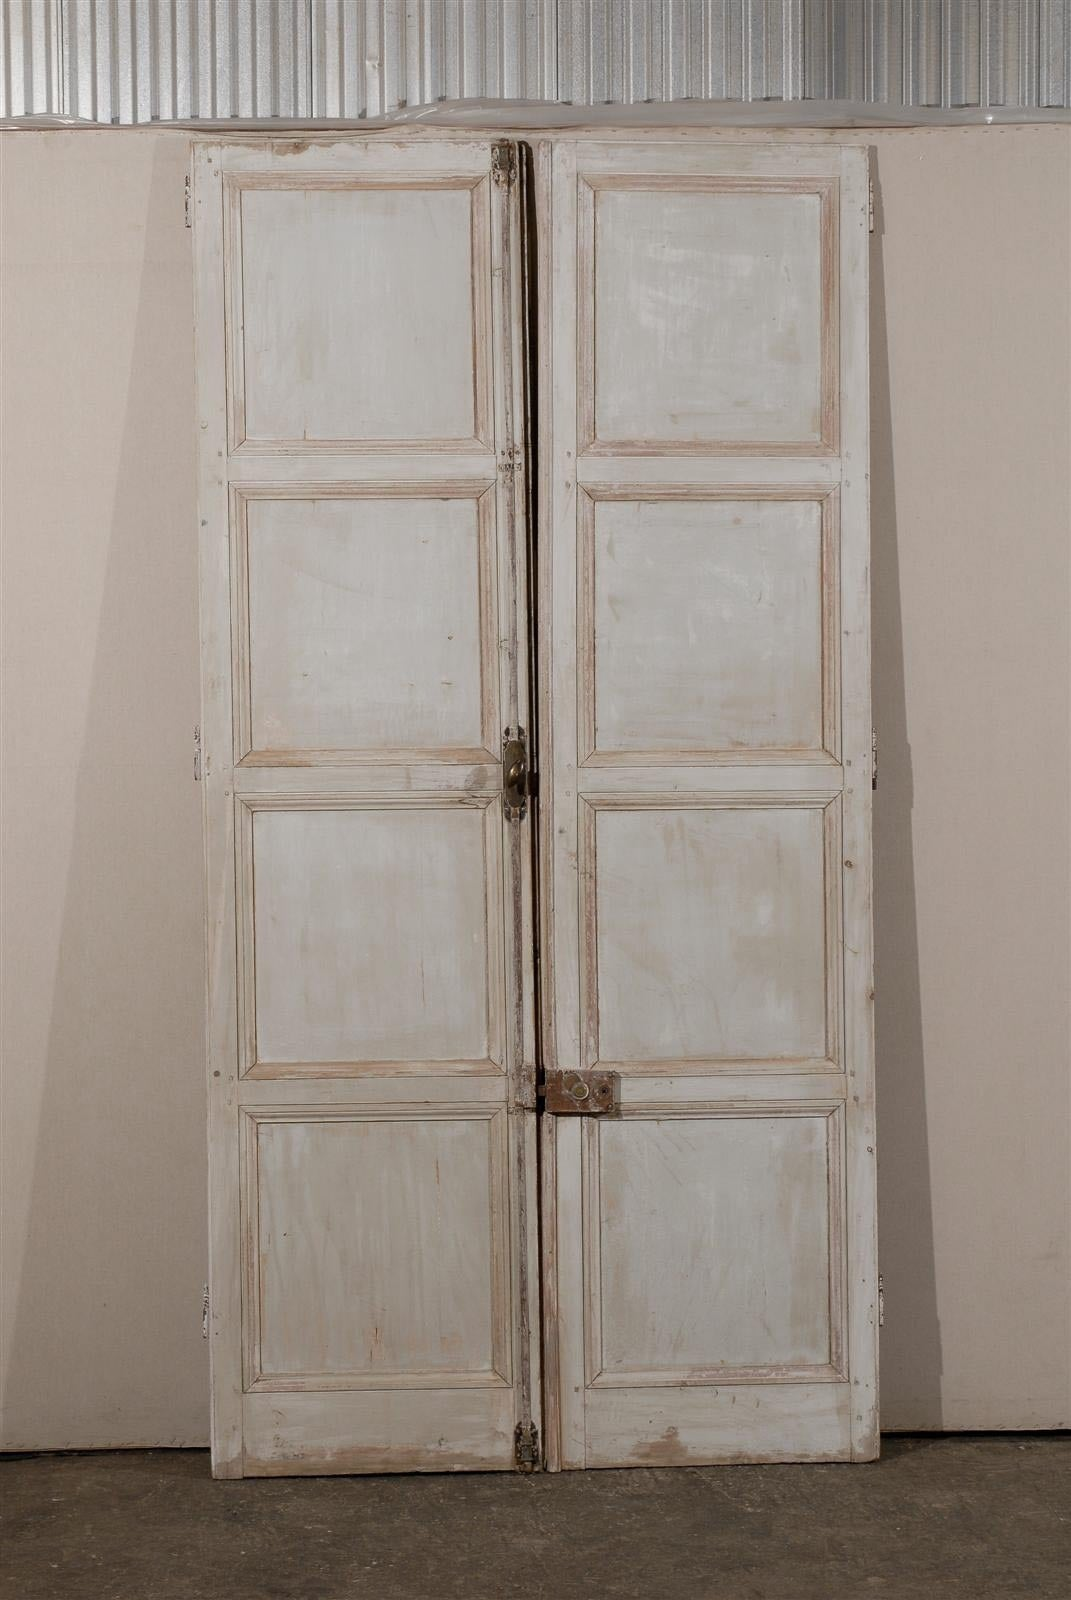 Pair of 19th century french painted wood doors for sale at for Wooden french doors for sale